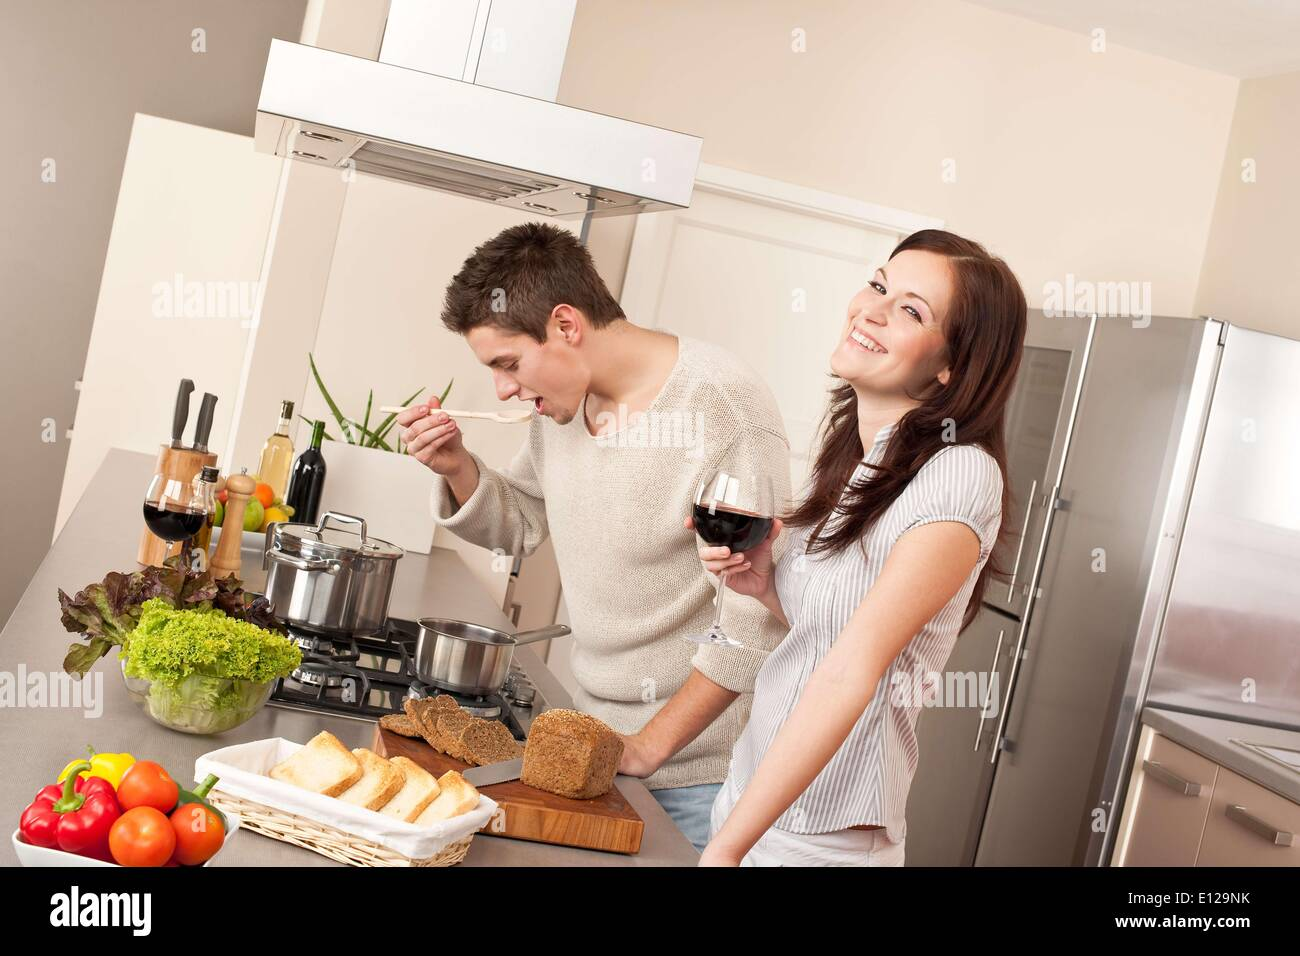 Jan. 23, 2010 - Jan. 23, 2010 - Young couple cooking in kitchen together drinking red wine - Stock Image